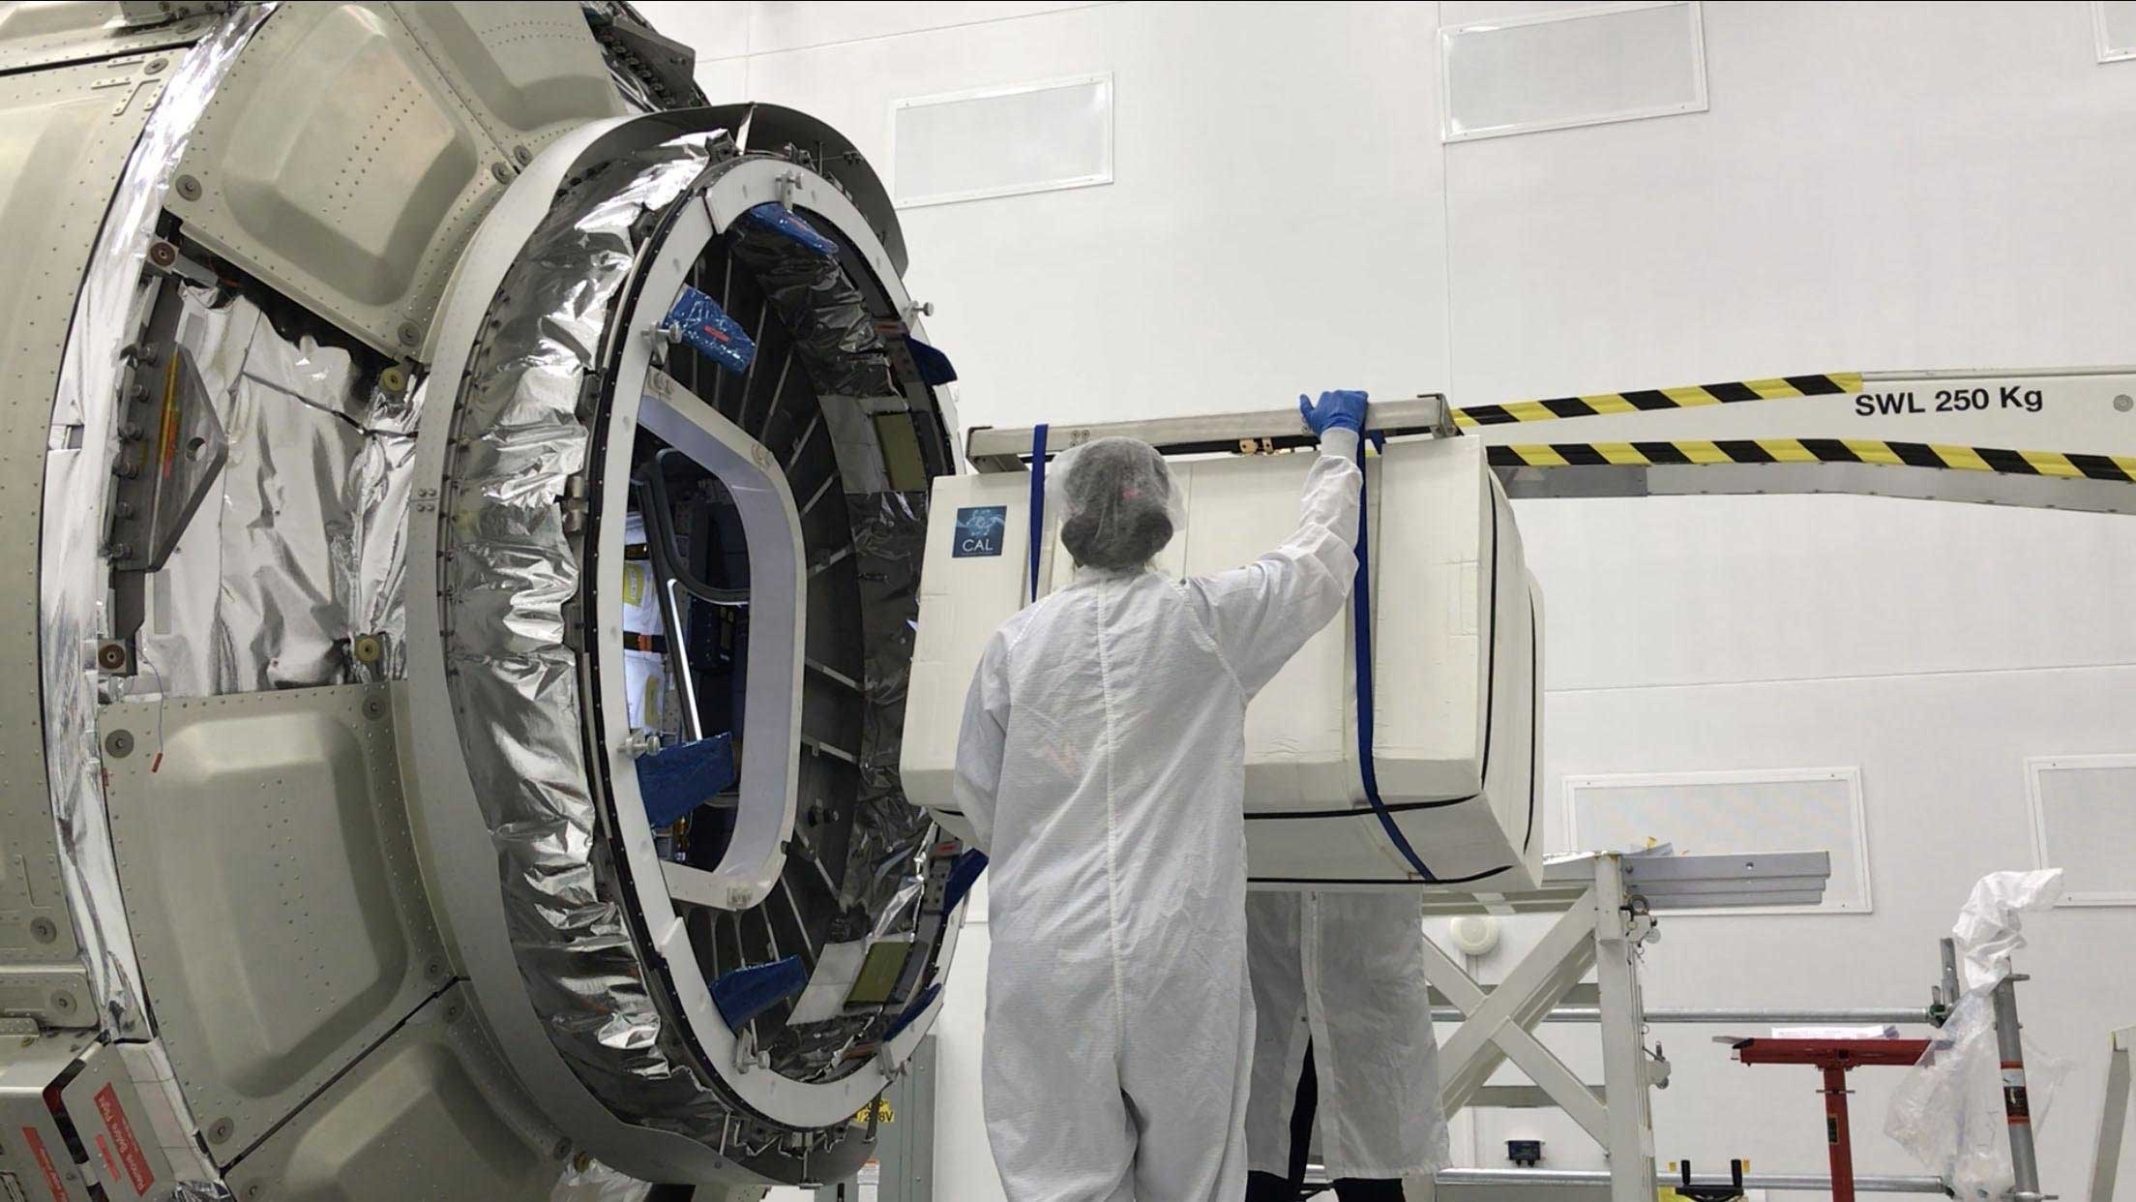 The Cold Atom Laboratory (CAL), packaged in a protective layer, is loaded onto a Northrop Grumman (formerly Orbital ATK) Cygnus spacecraft for its trip to the International Space Station. The facility launched in May 2018 from NASA's Wallops Flight Facility in Virginia. Credit: NASA/Northrop Grumman